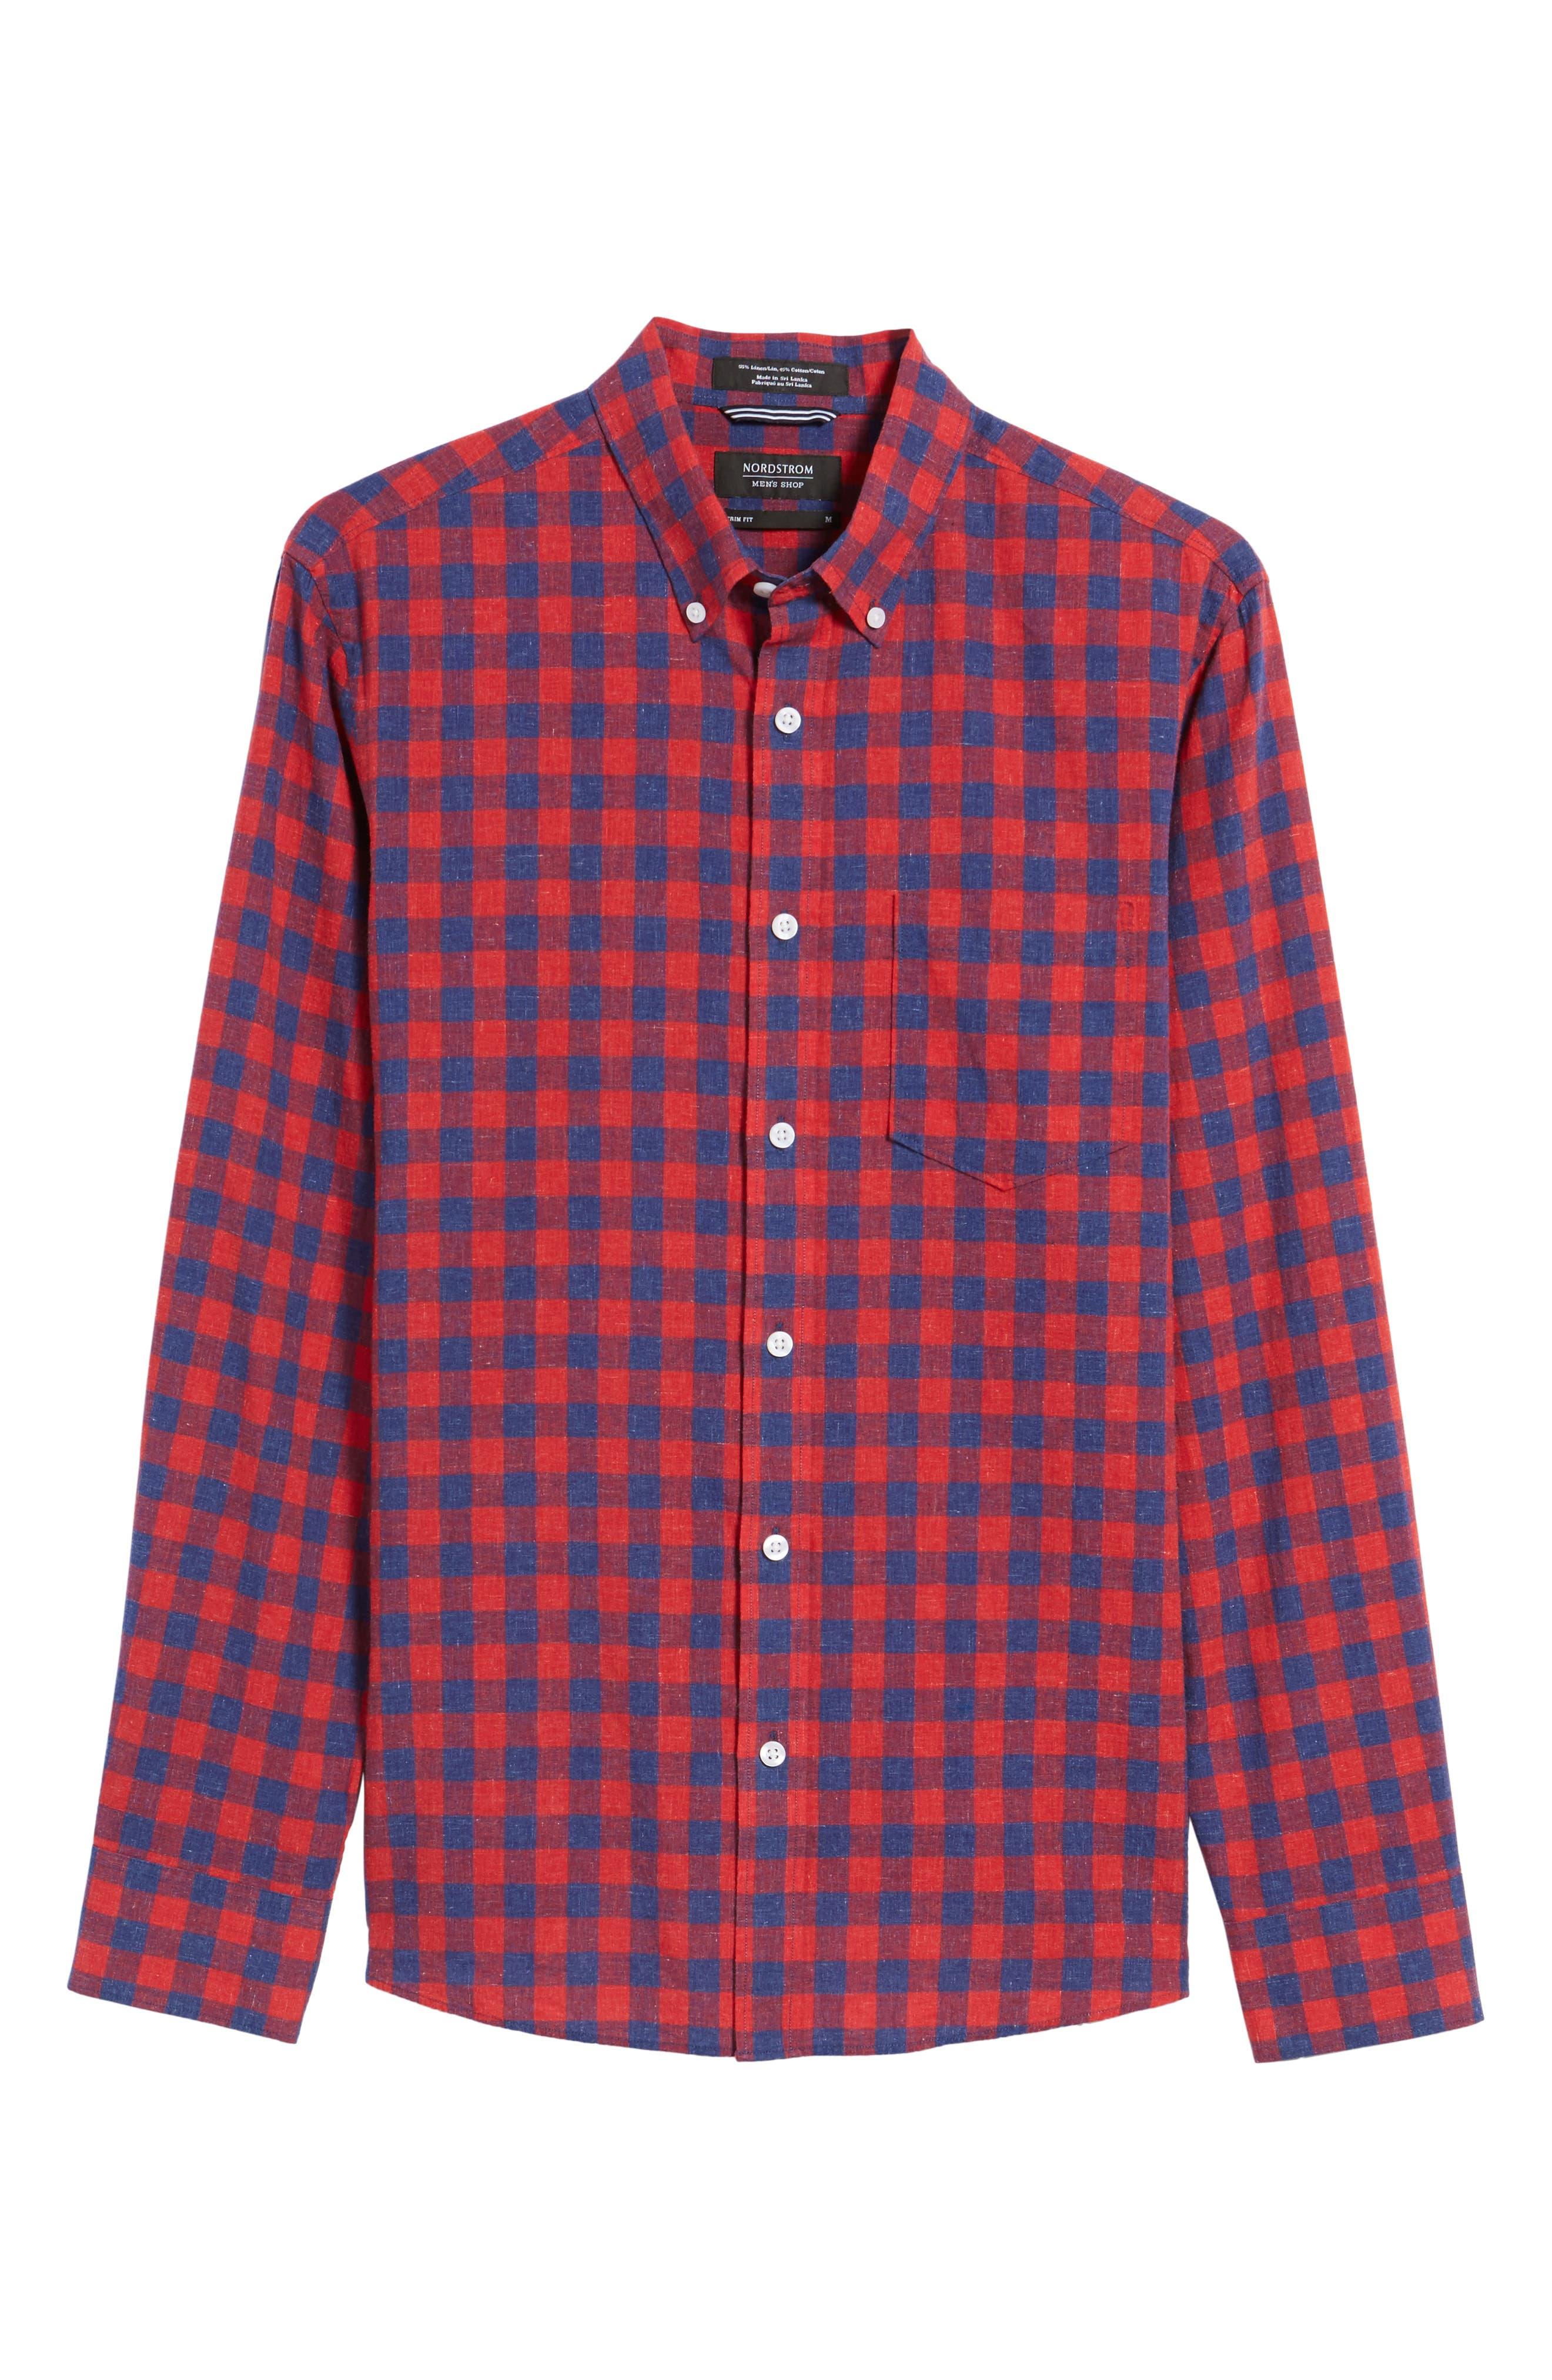 Spade Trim Fit Check Sport Shirt,                             Alternate thumbnail 6, color,                             Red Chili Blue Check